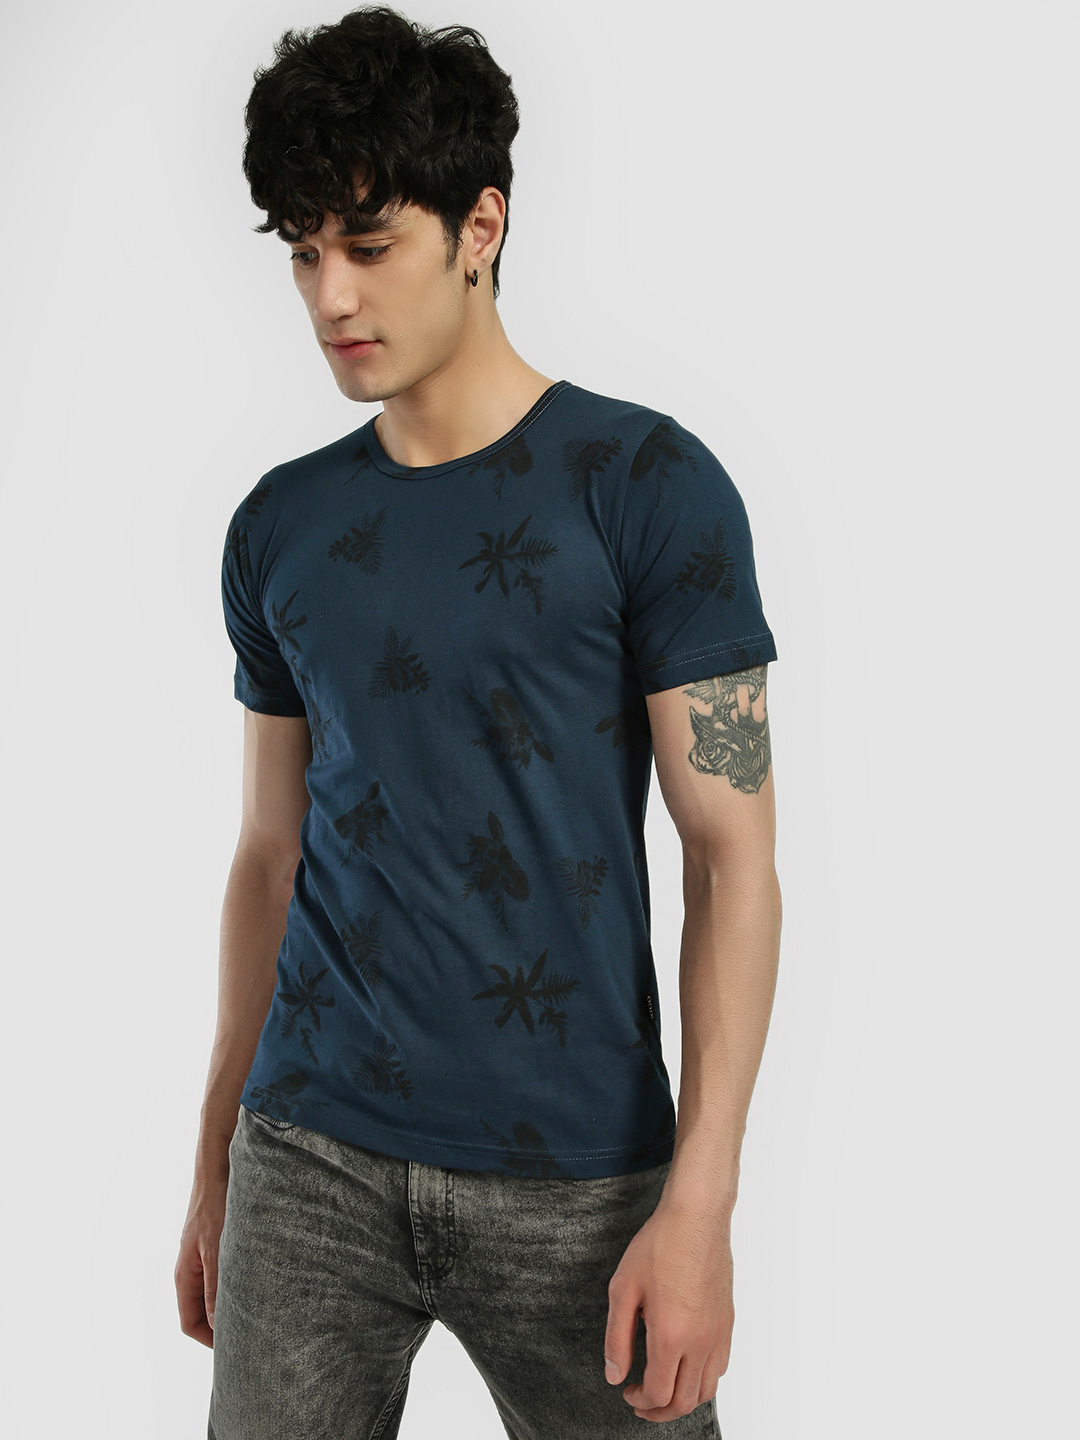 Rigo Blue Floral Print Short Sleeve T-Shirt 1